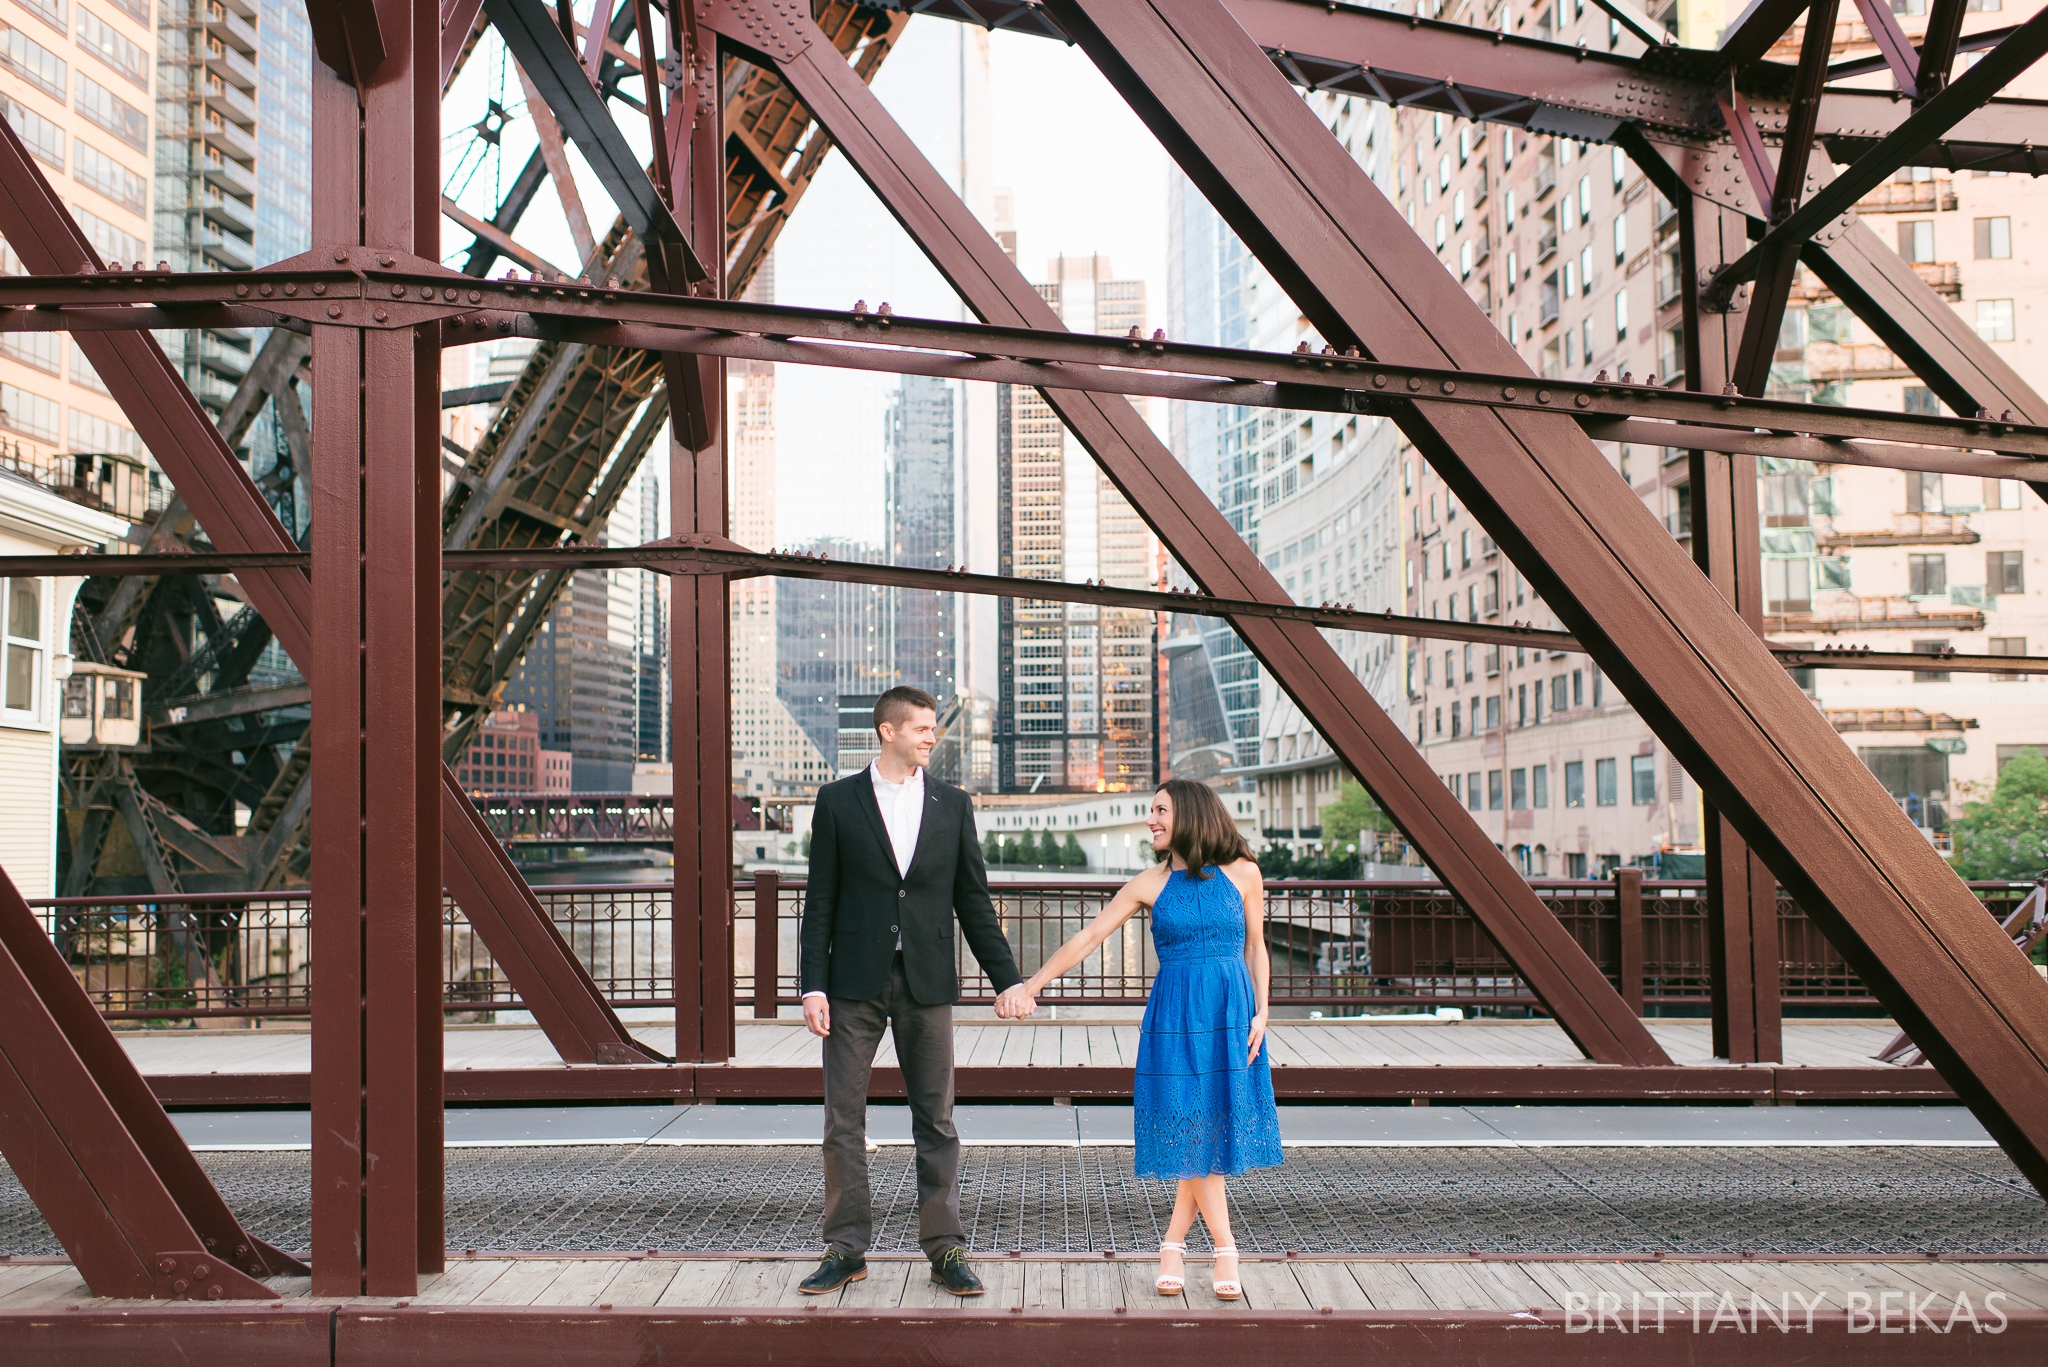 Chicago Engagement - Lincoln Park Engagement Photos - Brittany Bekas Photography_0016